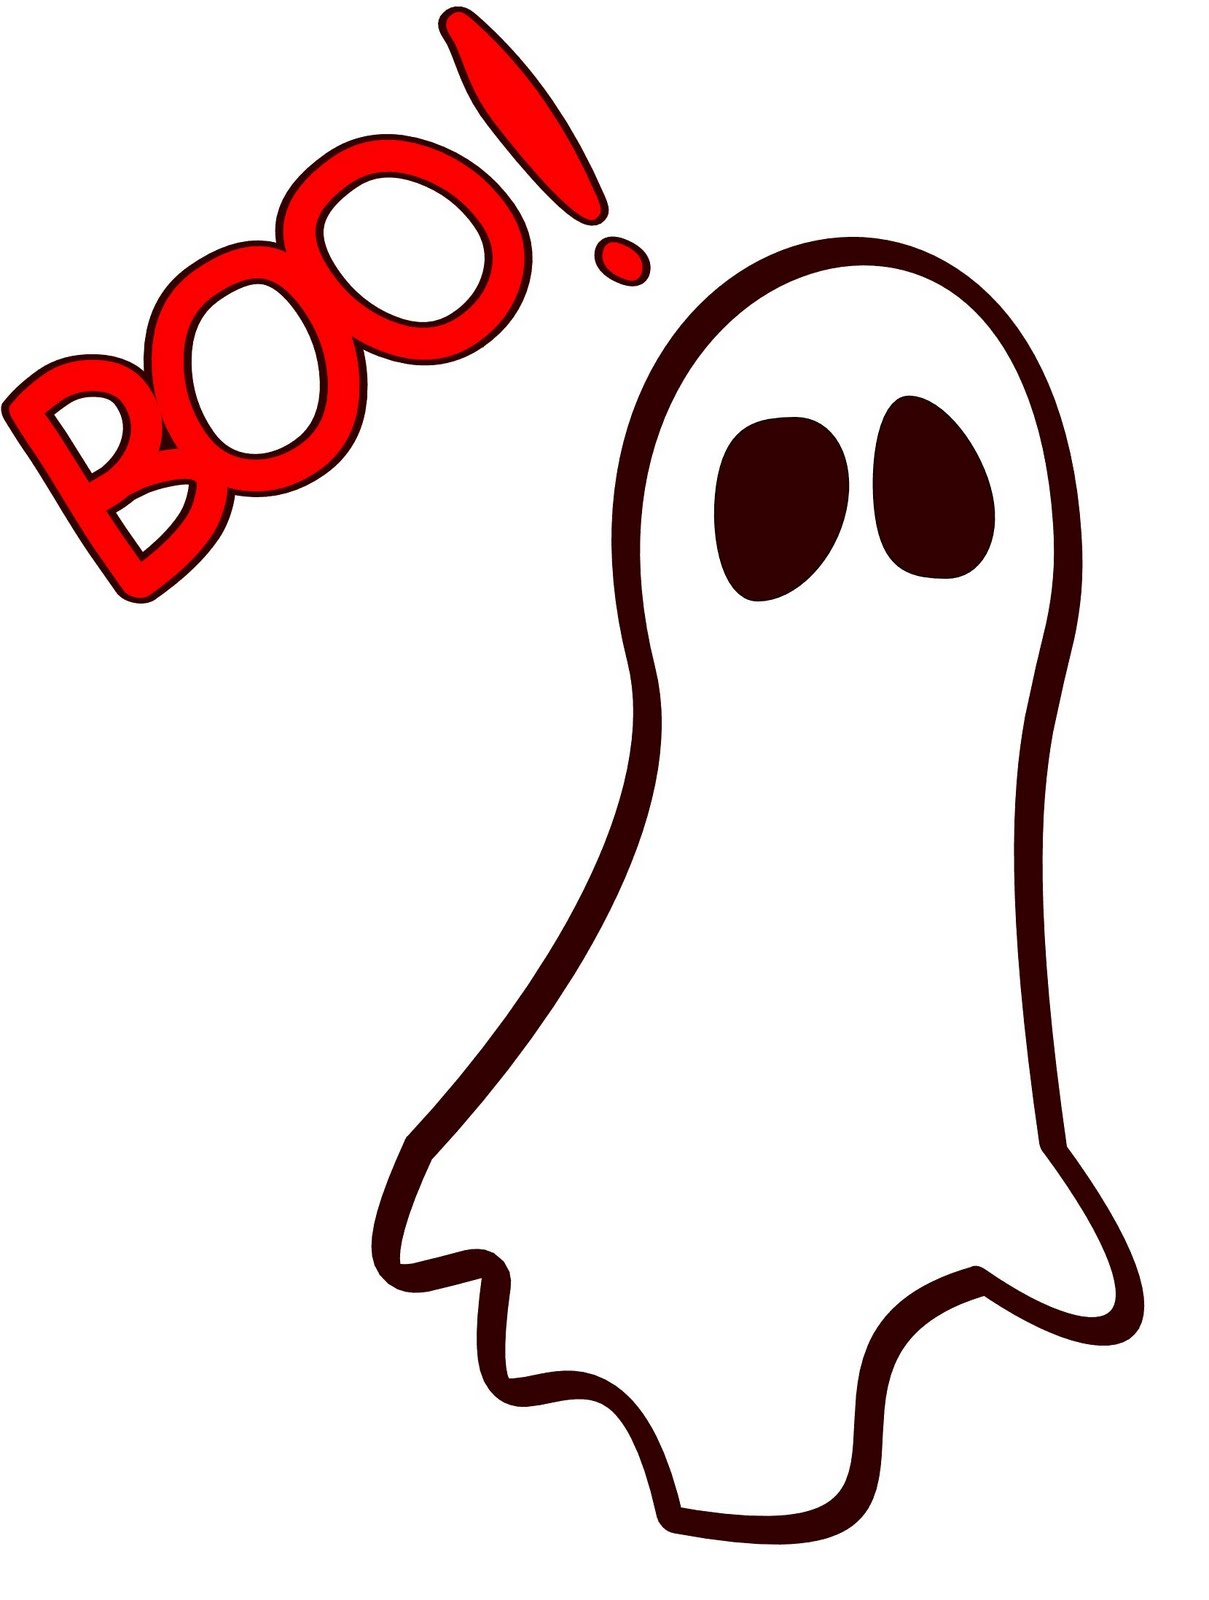 scary ghost clipart at getdrawings com free for personal use scary rh getdrawings com ghost clip art patterns ghost clip art patterns